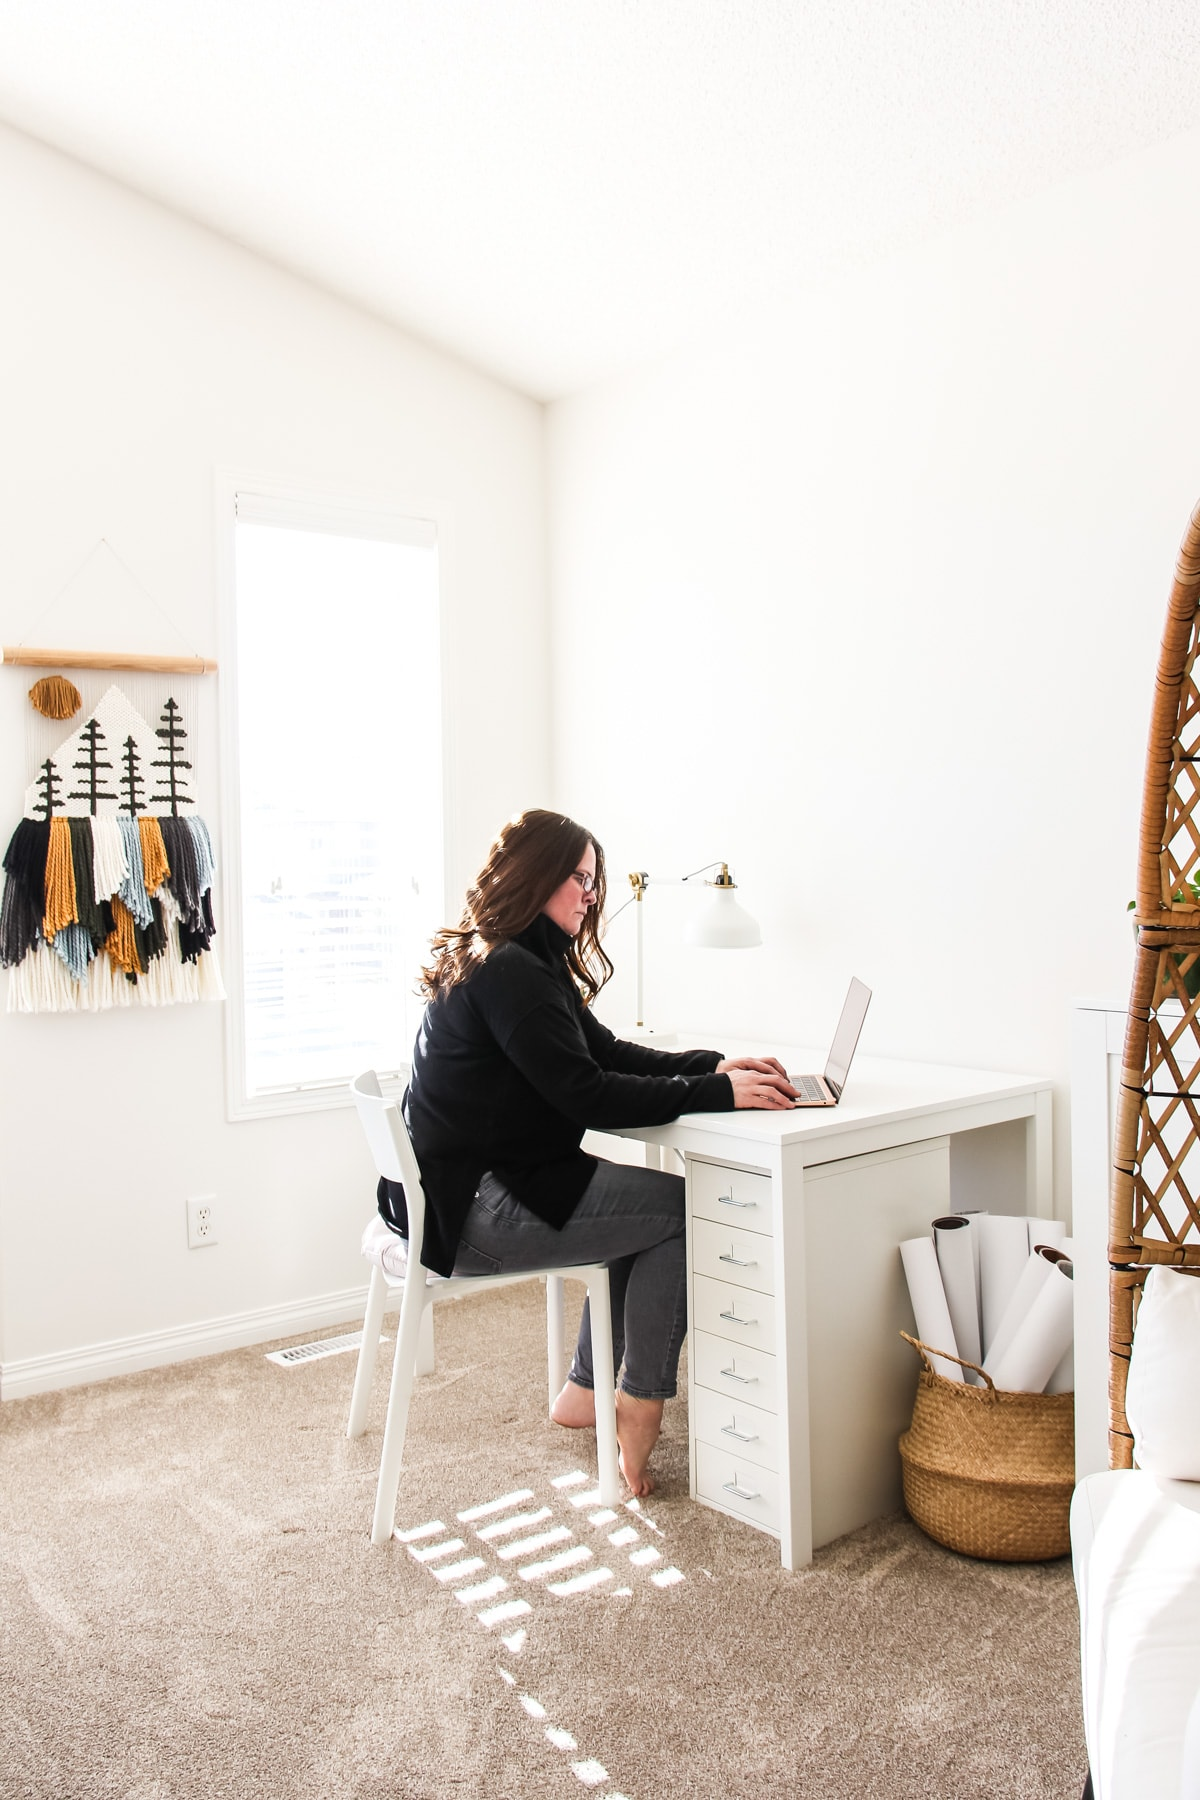 a small office space with a lady dressed in black working at a white desk. on the wall in the background is a yarn wall hanging.